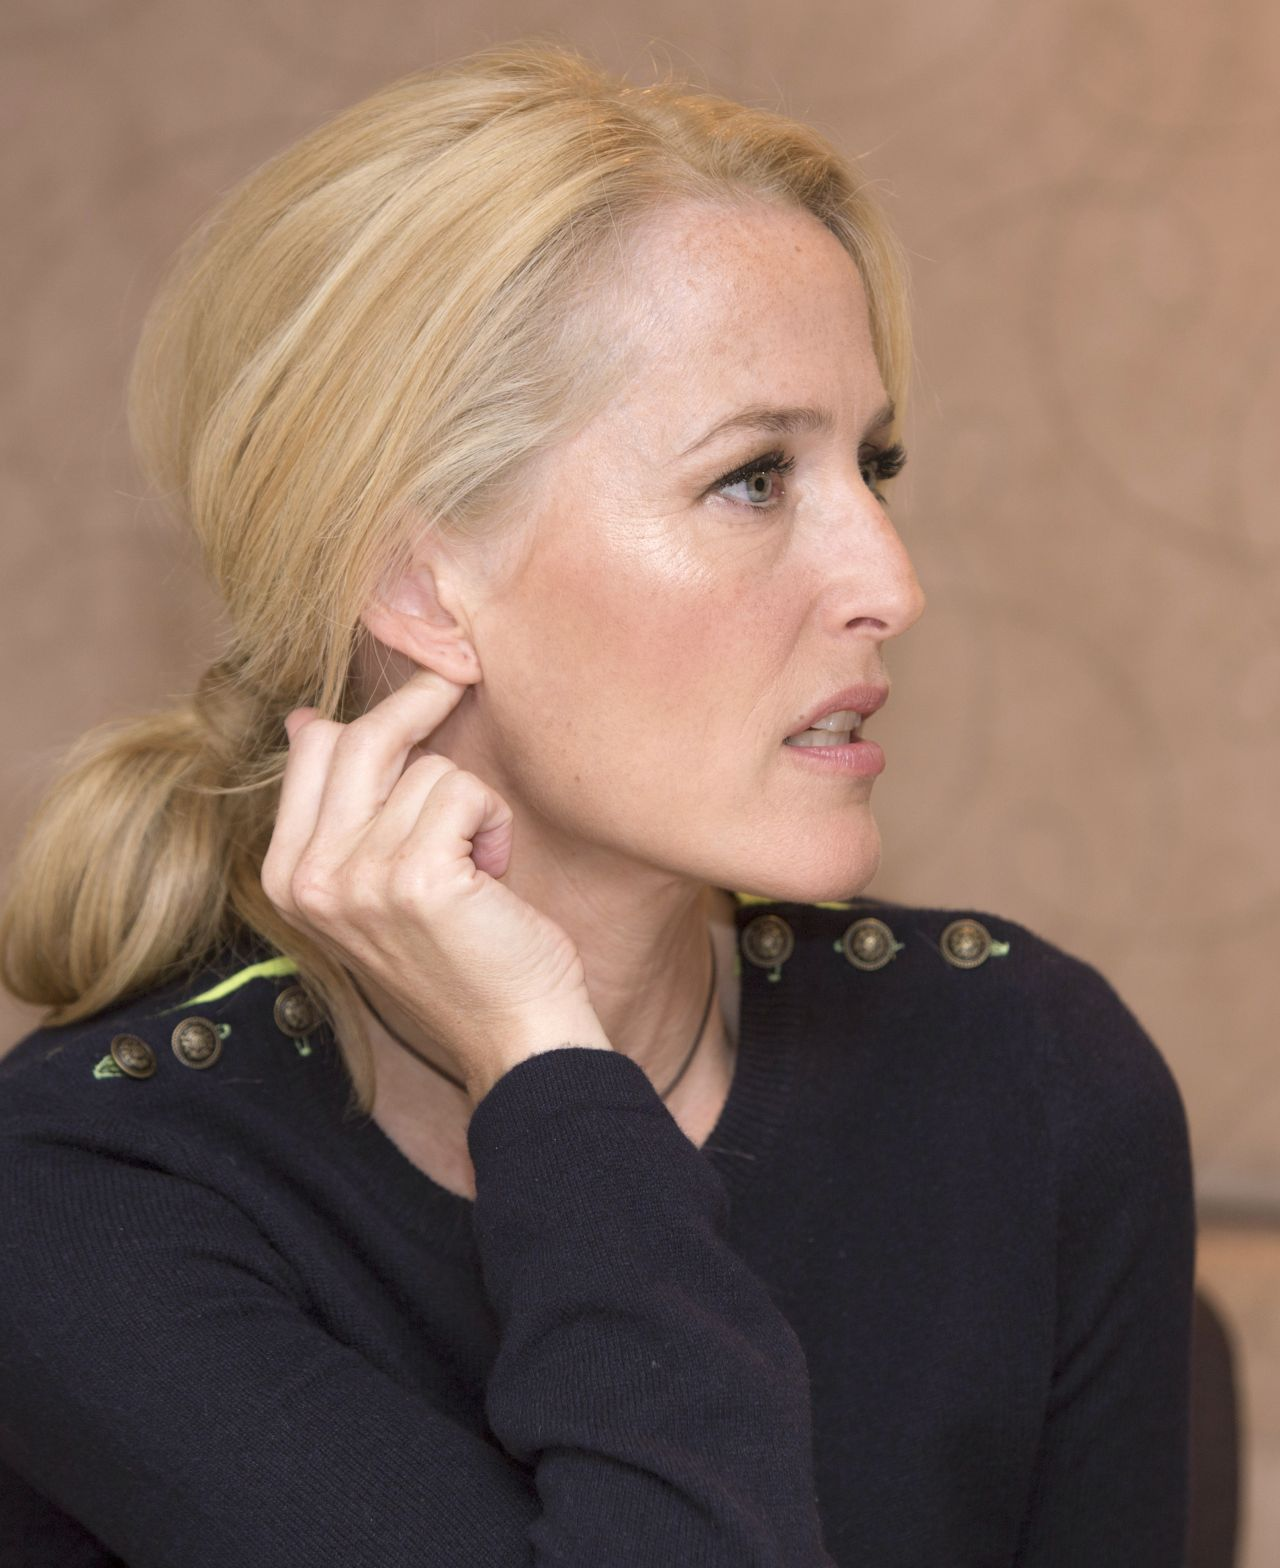 Gillian Anderson Quot American Gods Quot Press Conference In